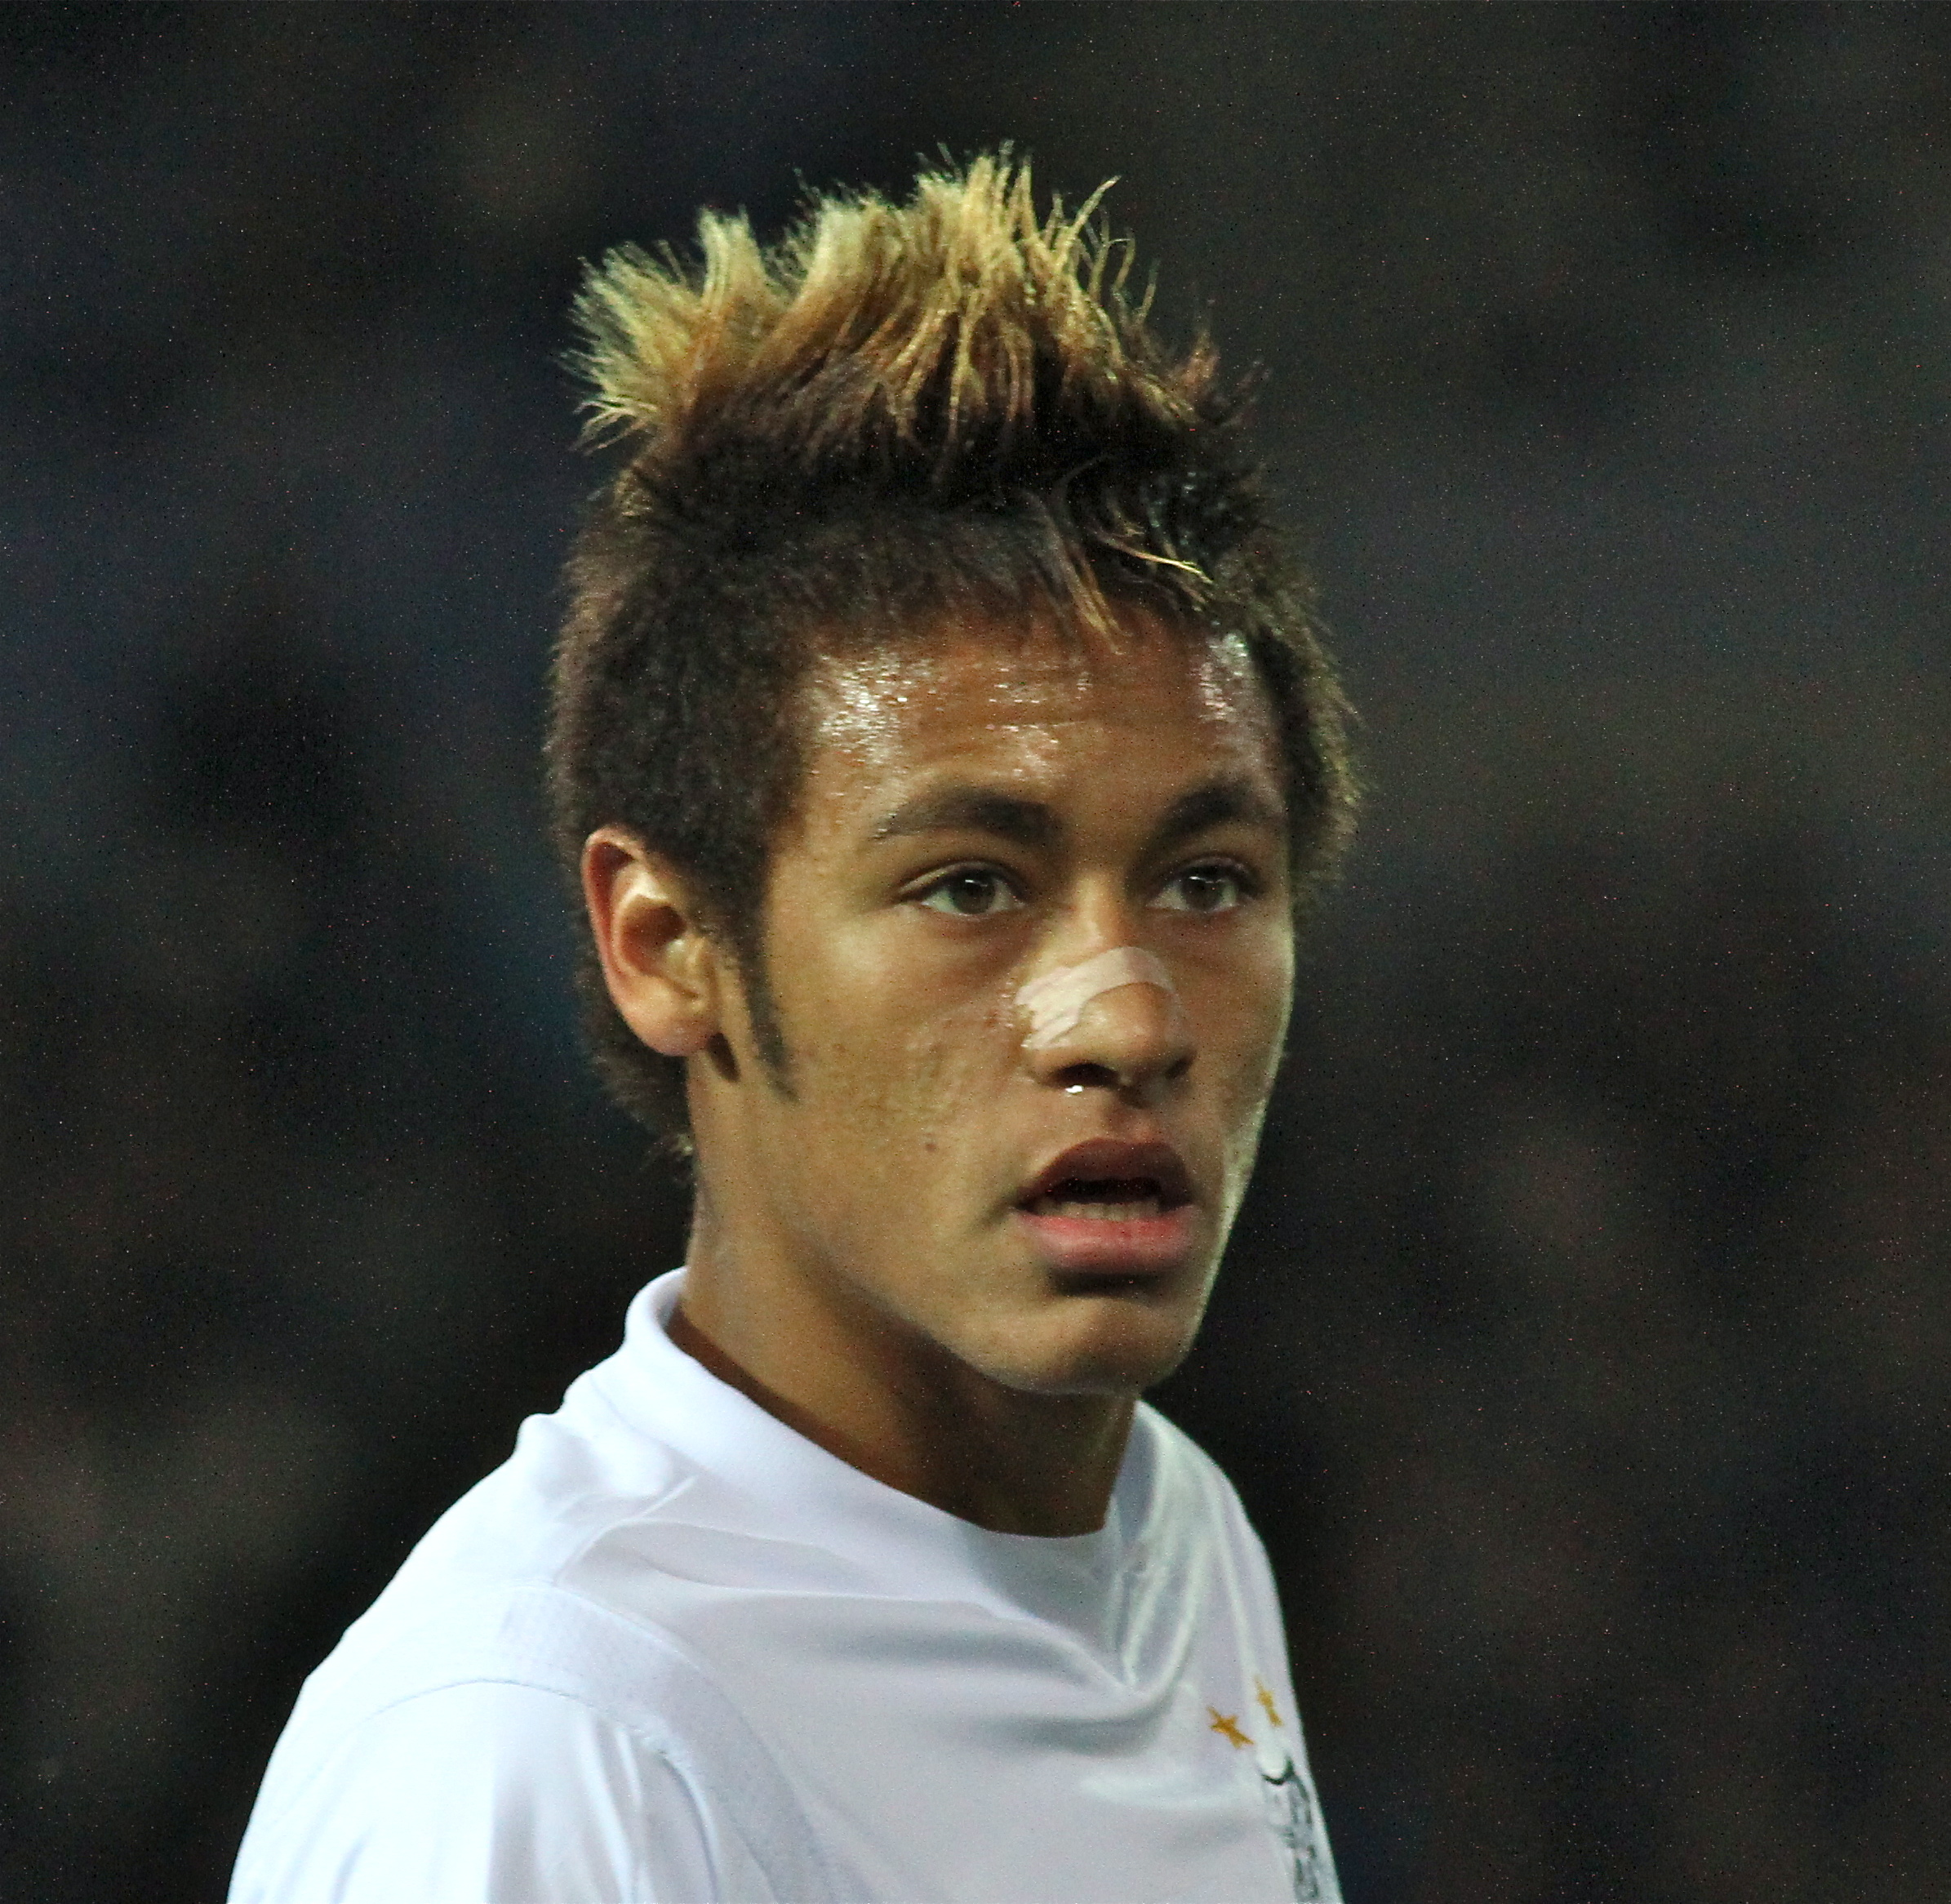 Description Neymar Junior the Future of Brazil.jpg